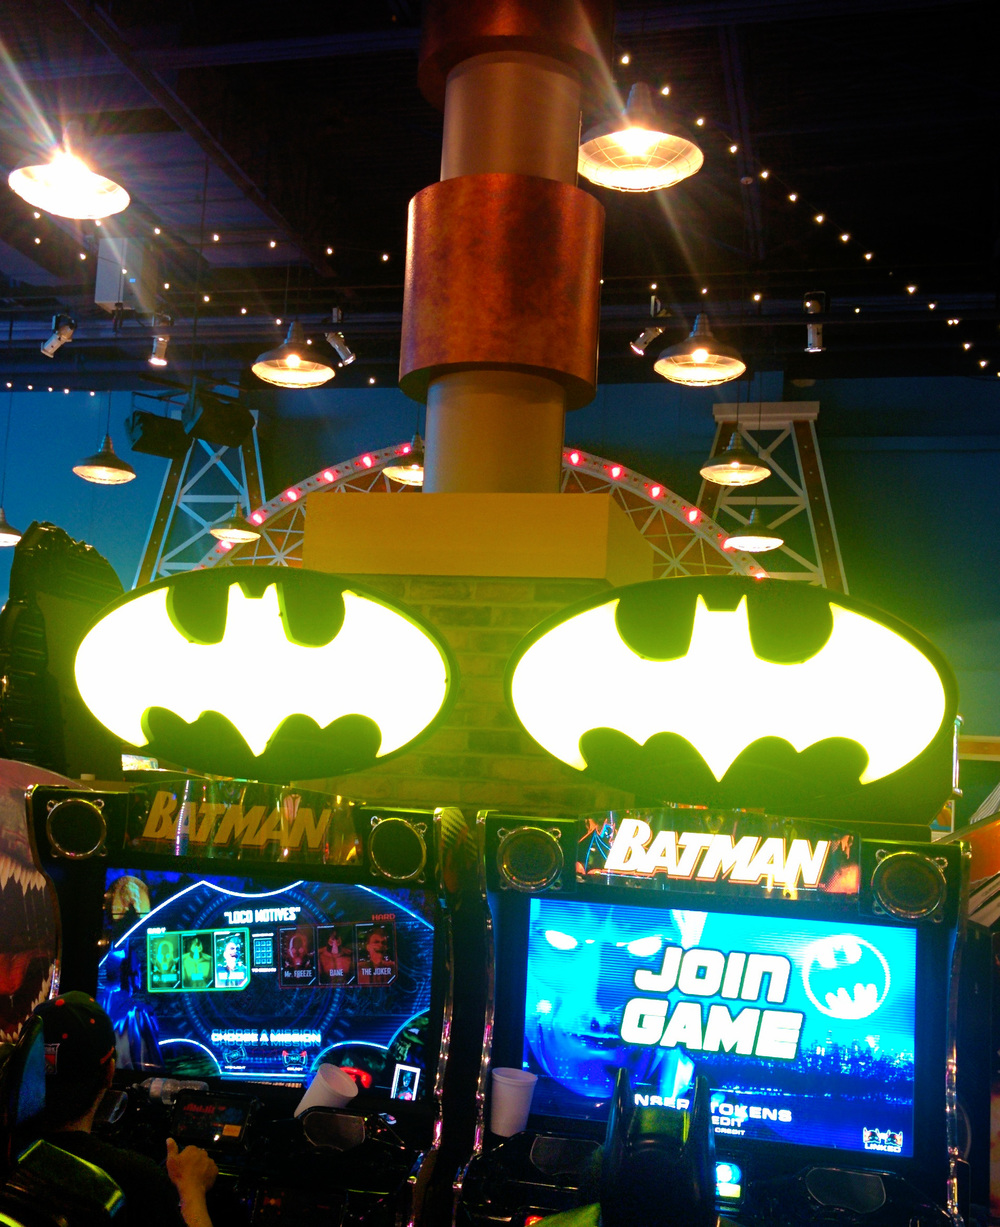 What I wouldn't give to take home one of those flashing batman signs.